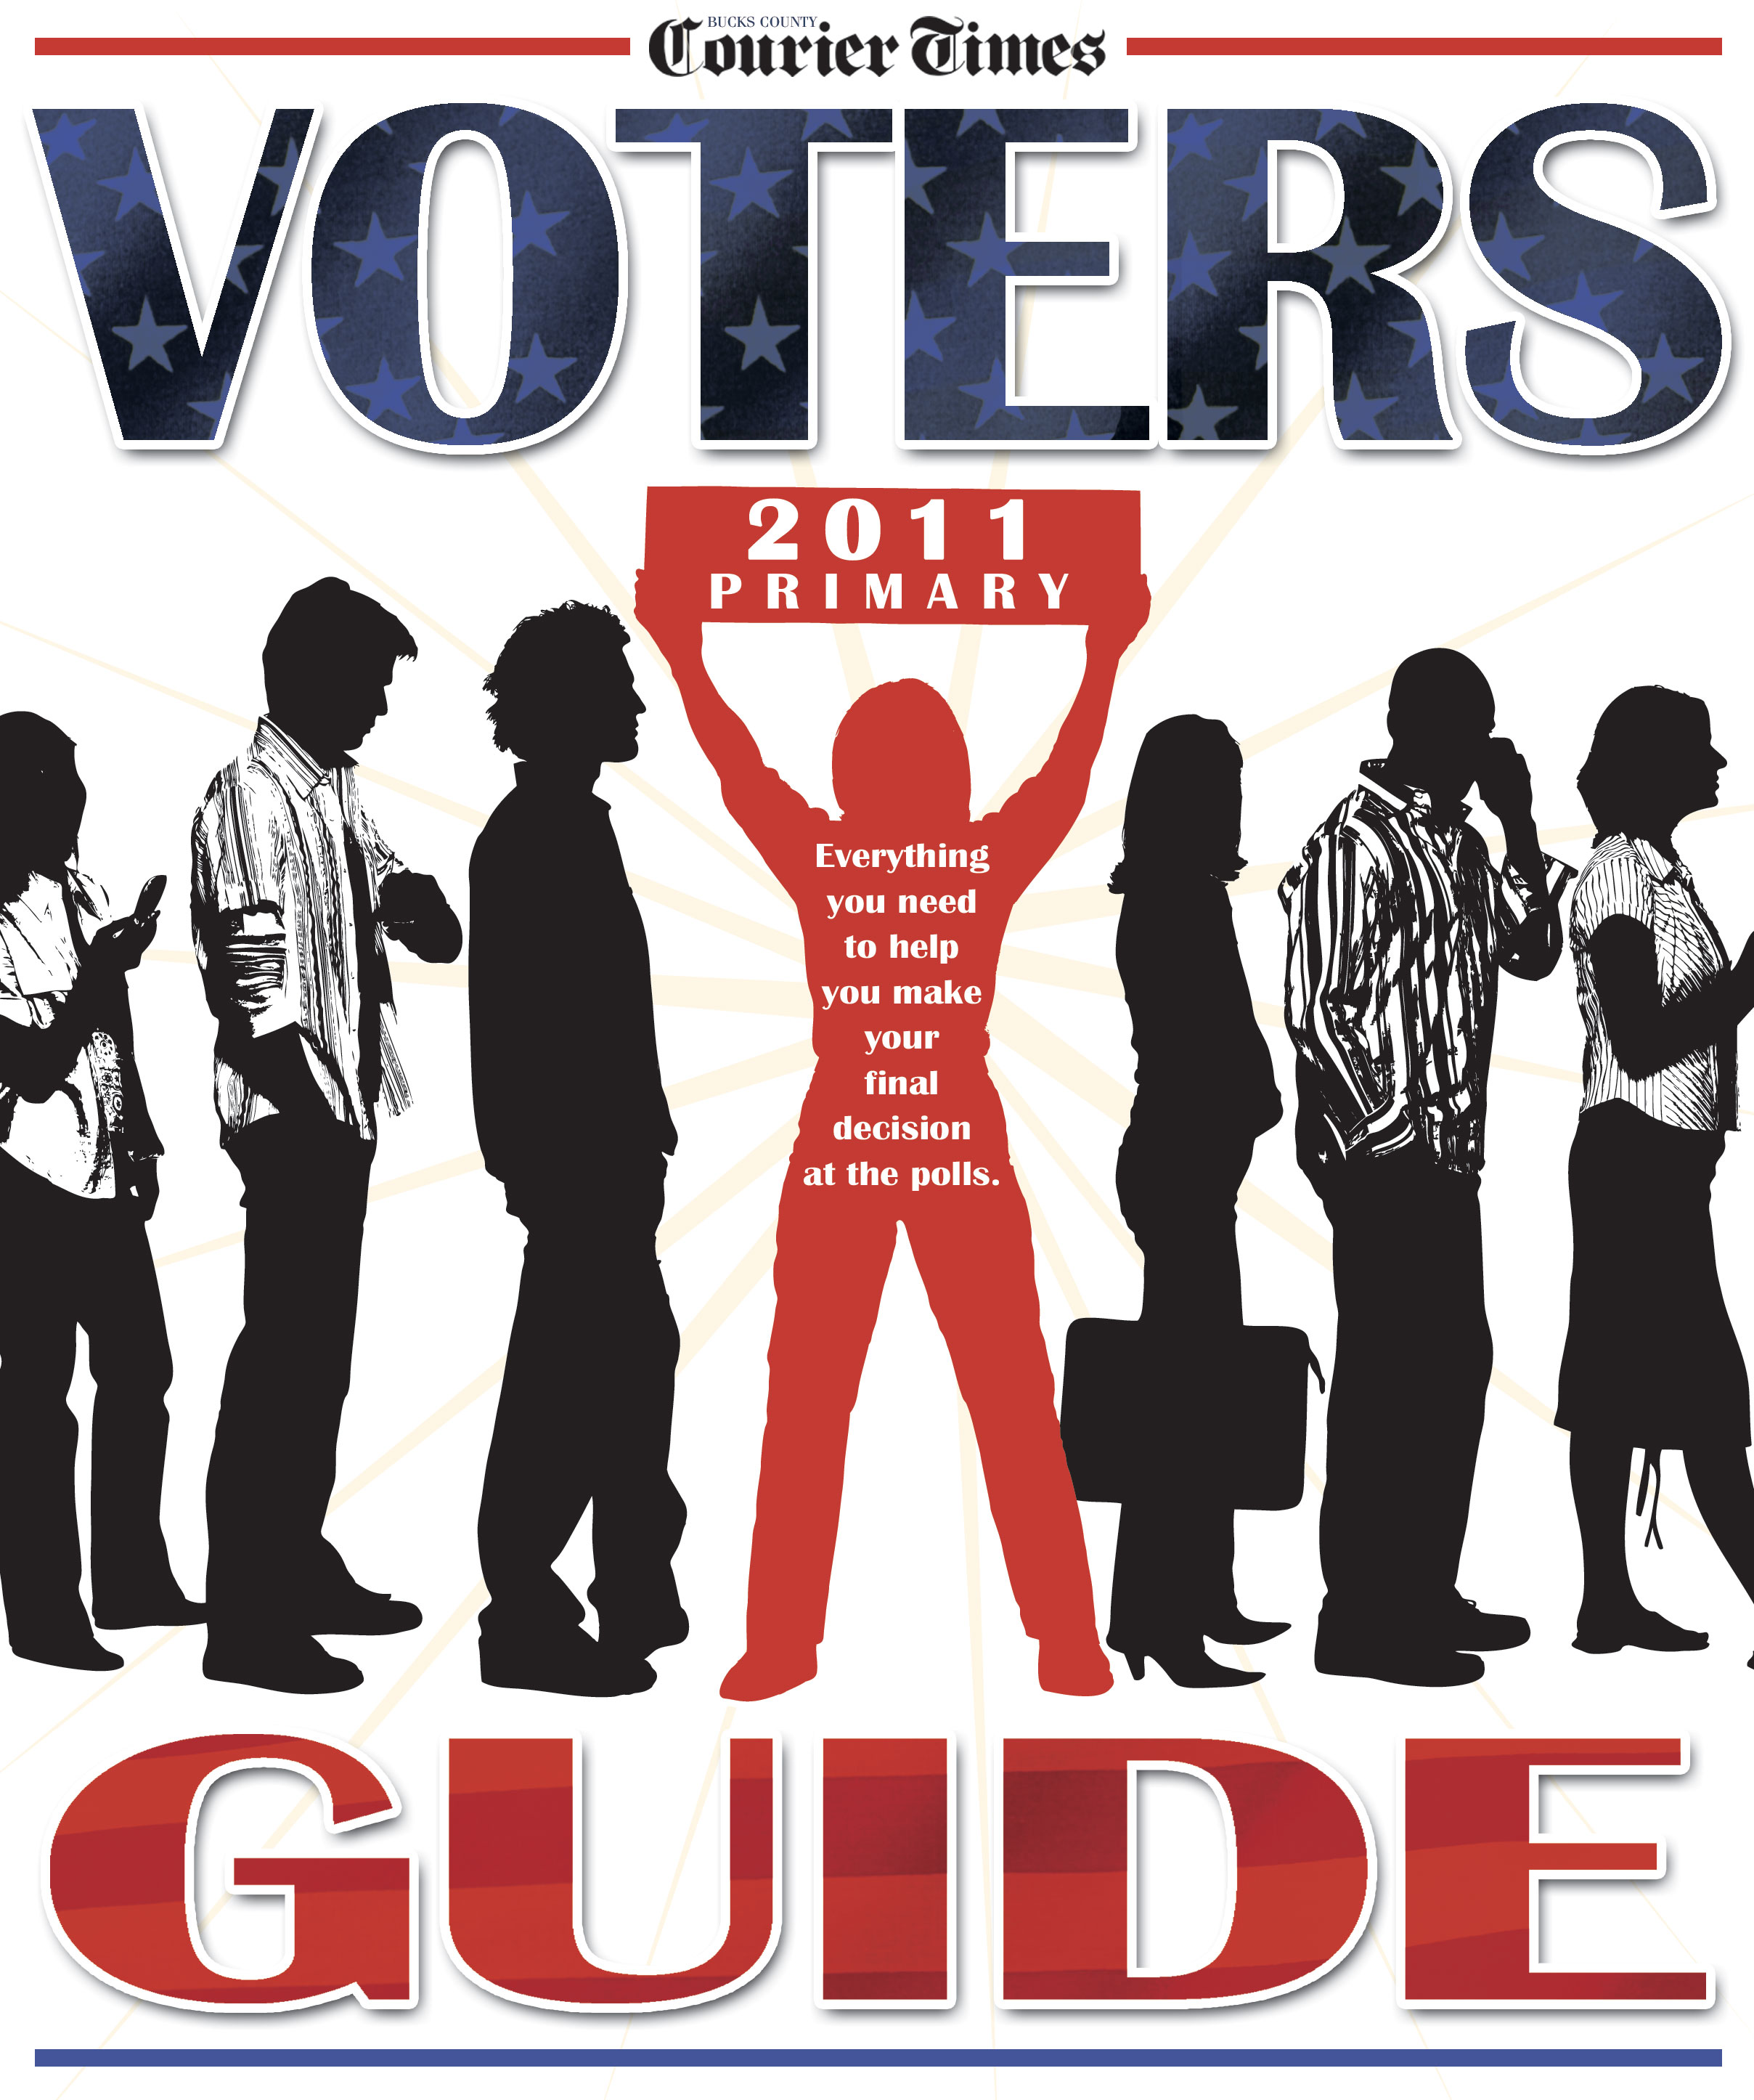 VotersGuideCover2011